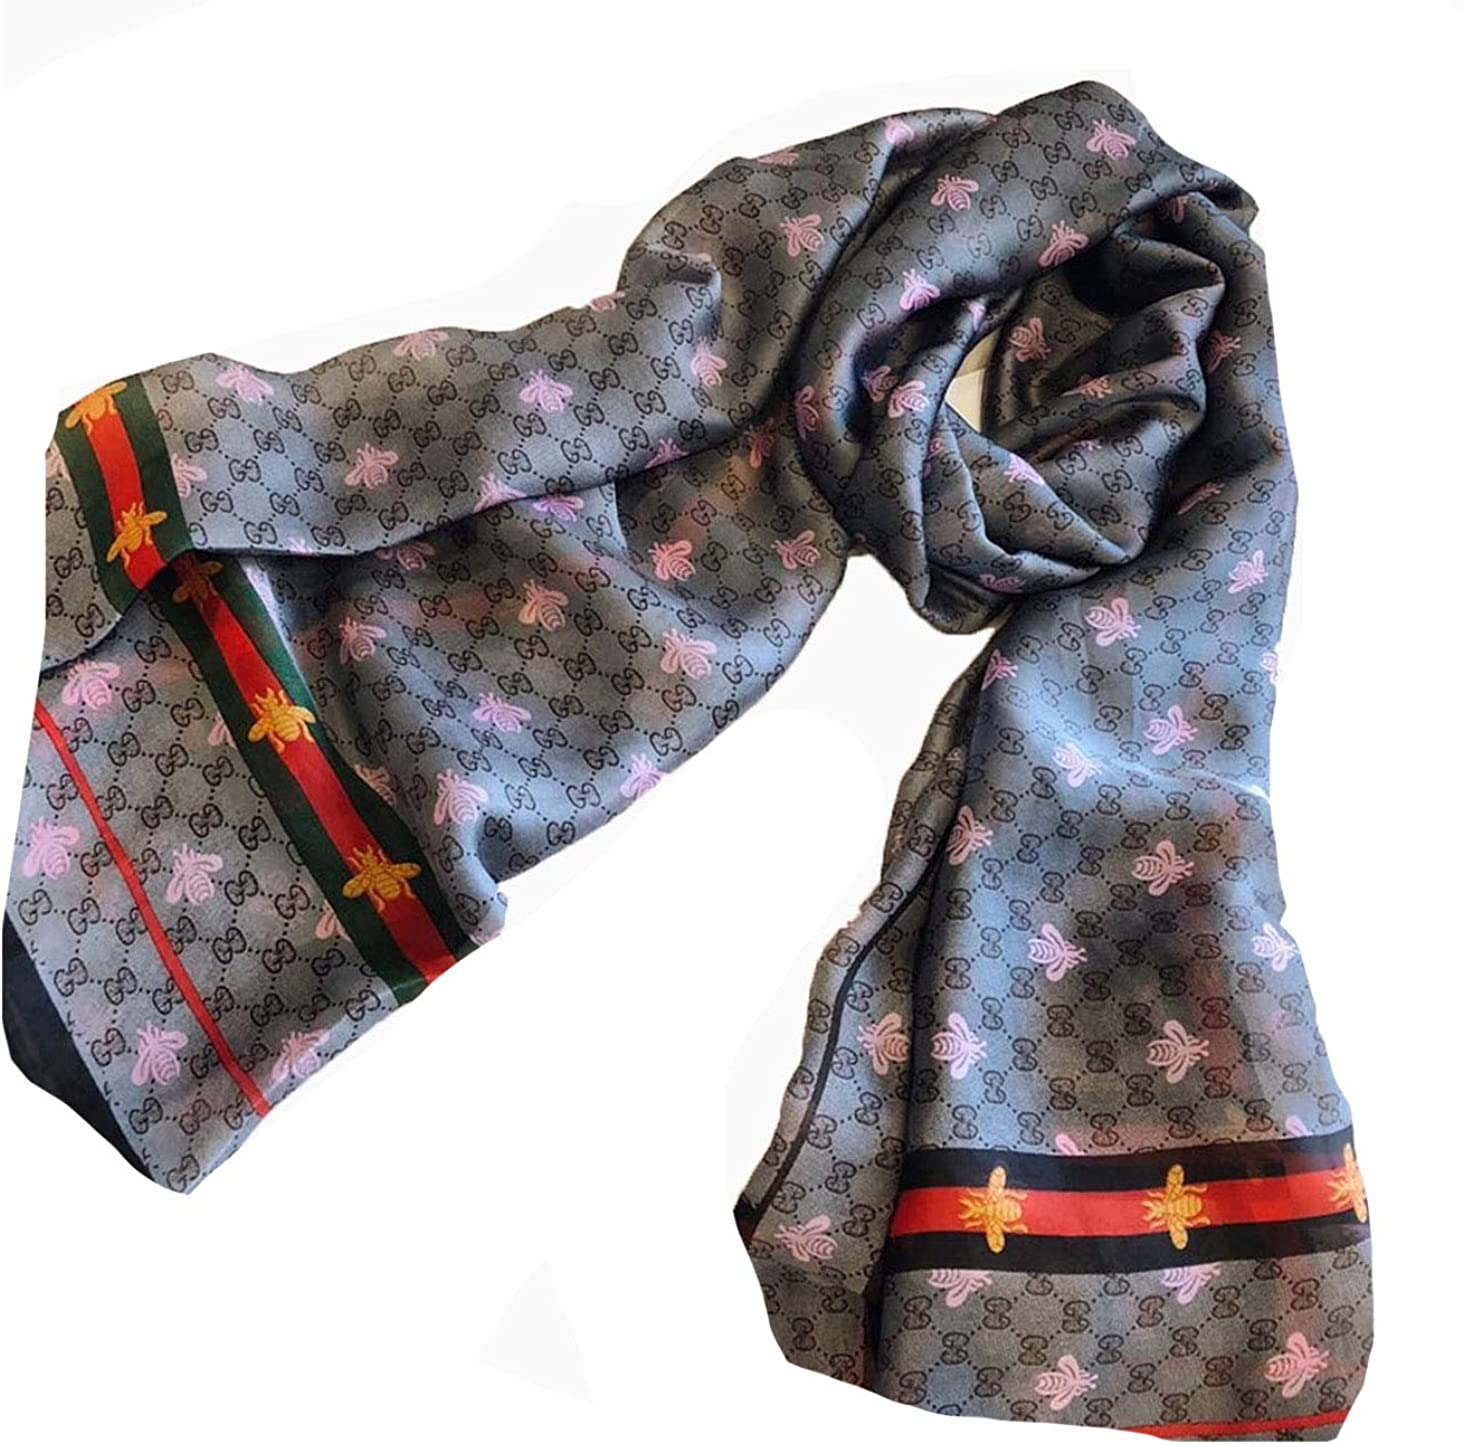 Women's and men's luxurious and fashionable warm cashmere scarf is a holiday gift suitable for all seasons scarves